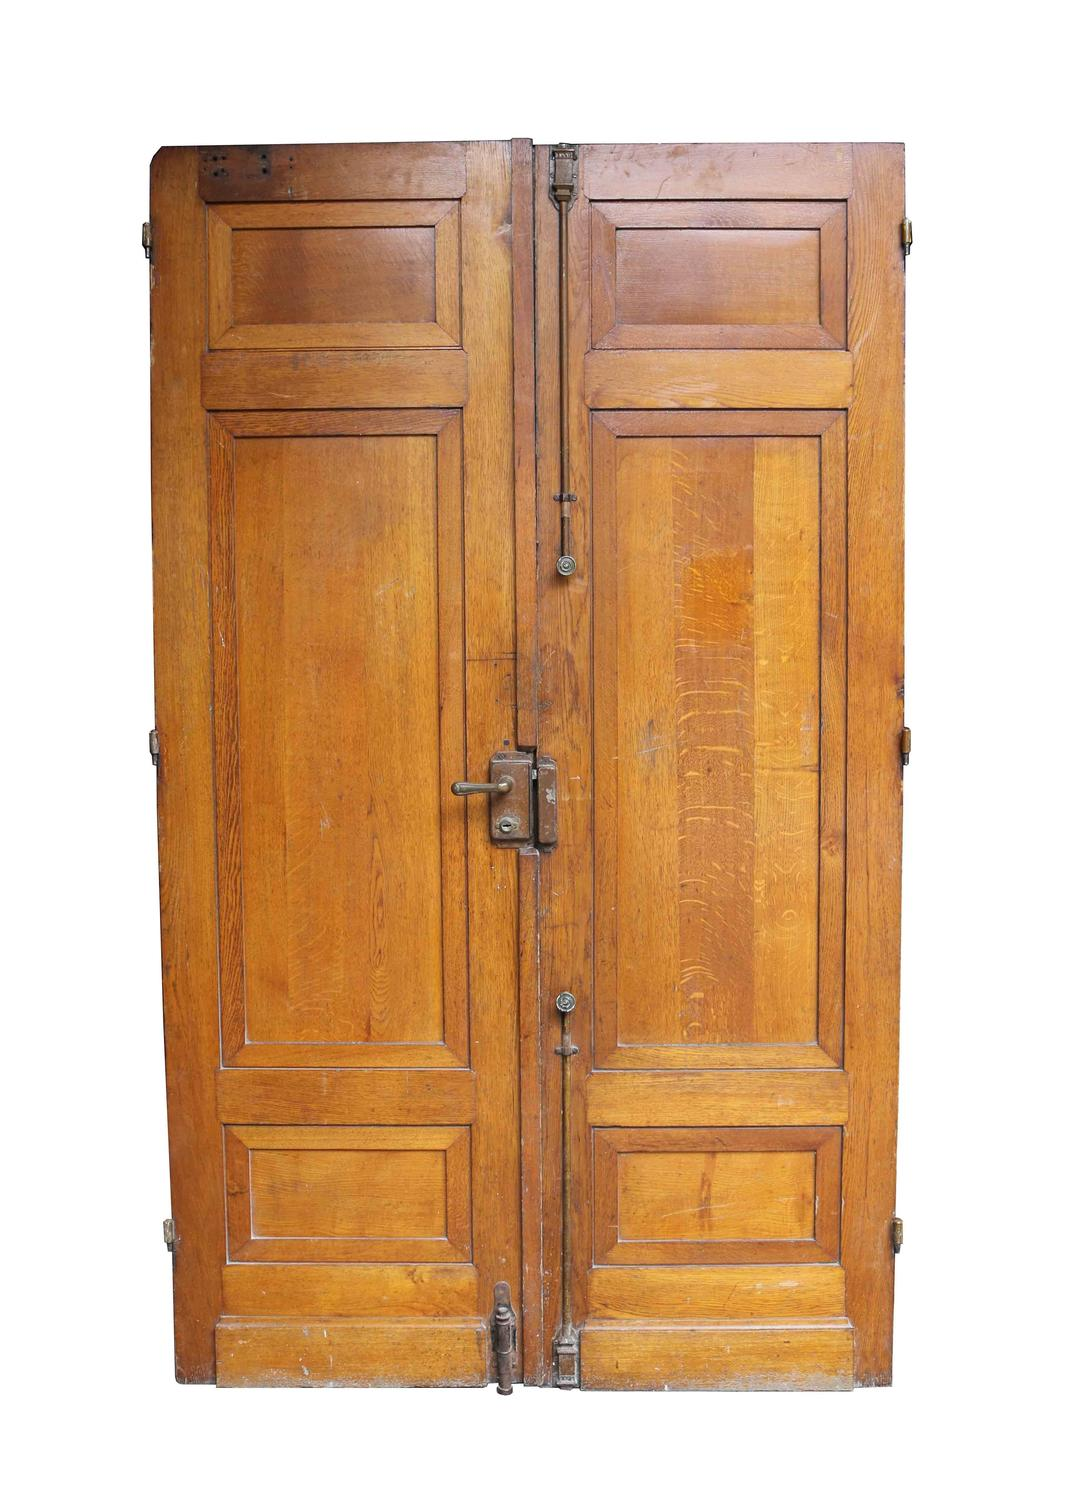 1500 #B67915 Pair Of Antique Exterior Oak Double Doors For Sale At 1stdibs save image Vintage Exterior Doors 41071071